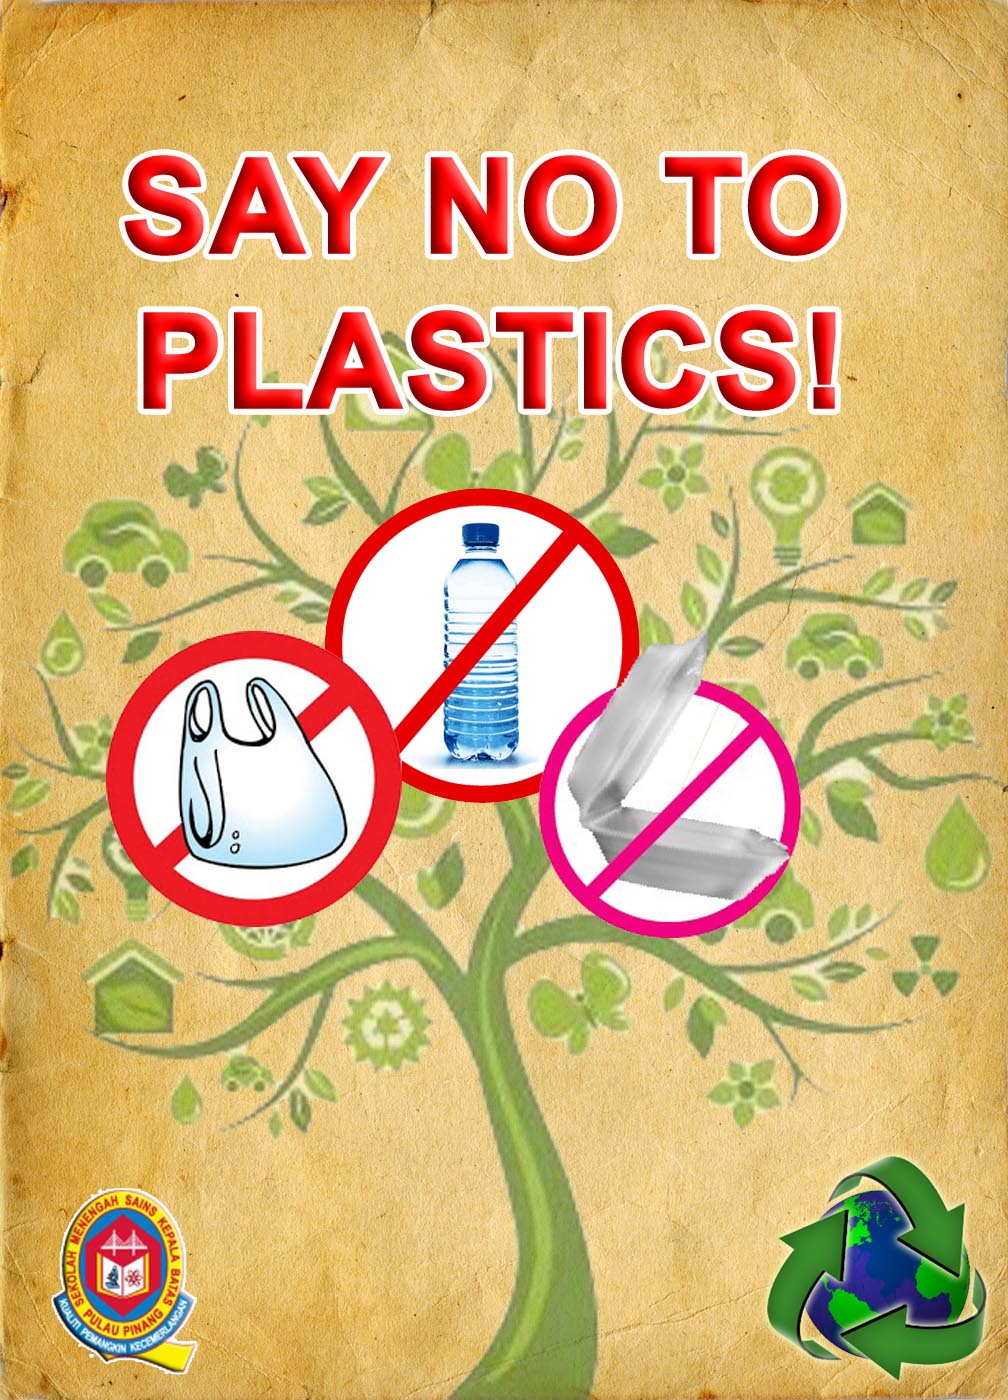 Say no to plastic bags summary